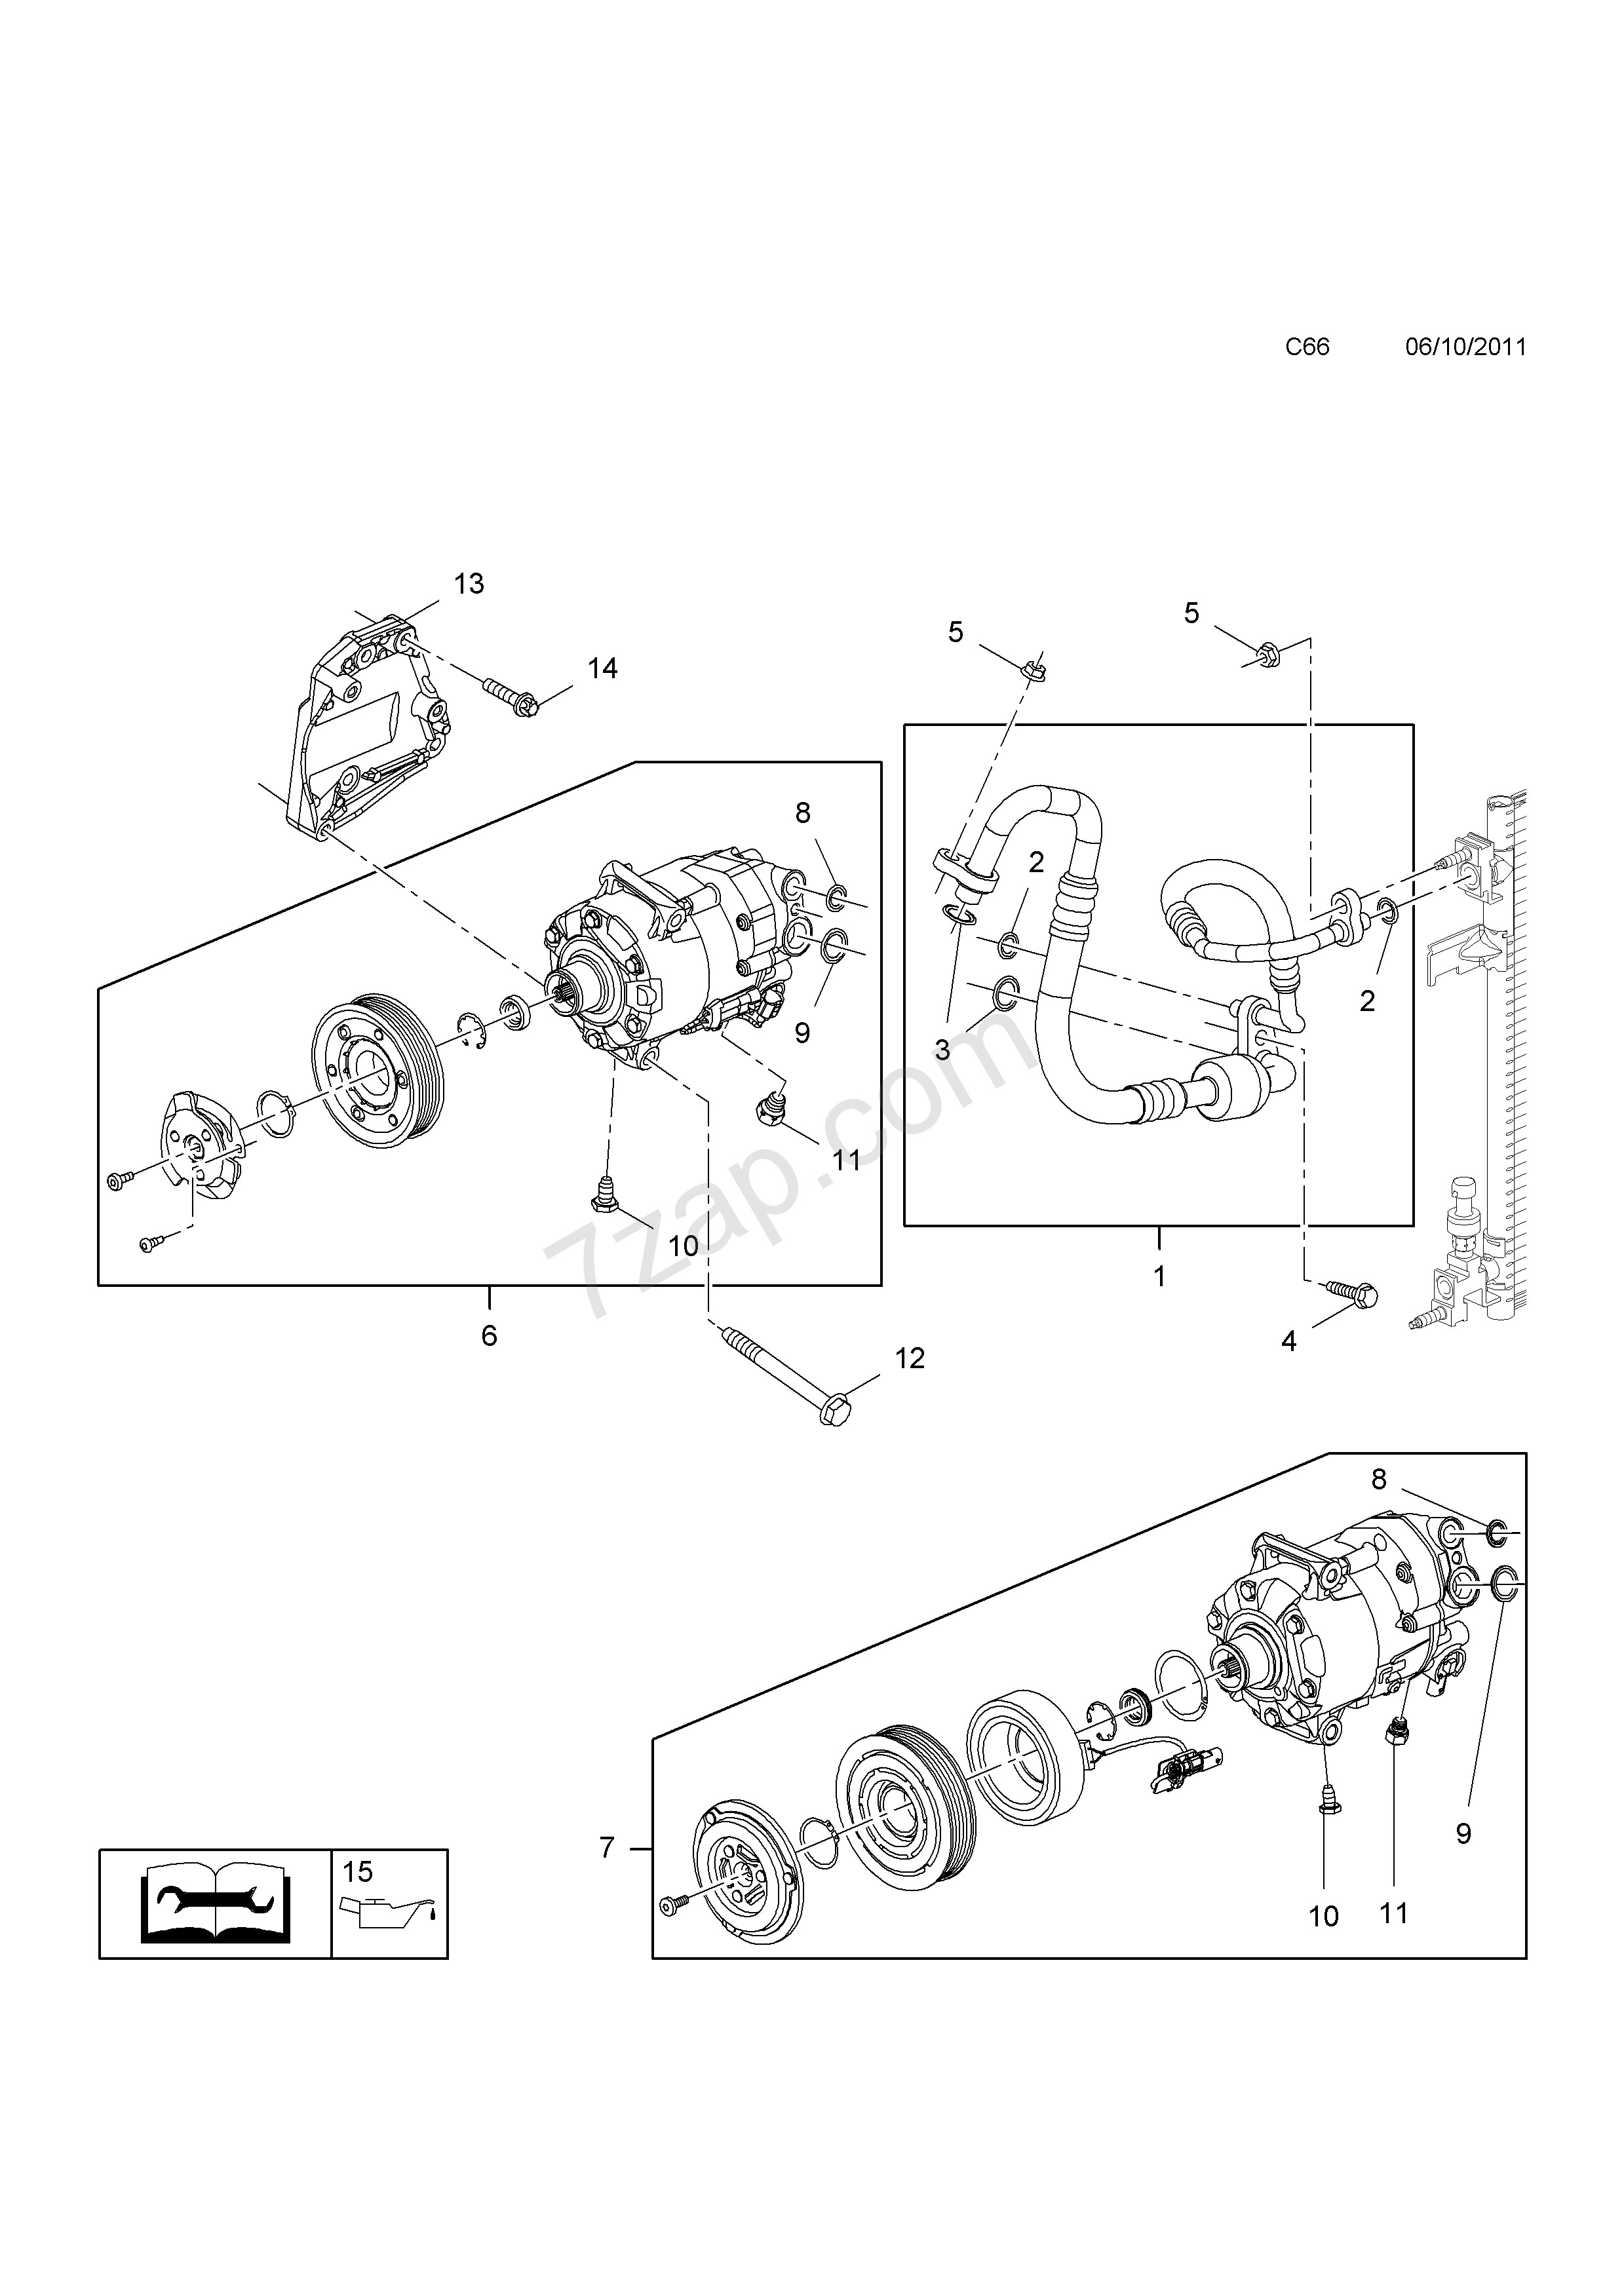 Vauxhall Astra G Stereo Wiring Diagram Best Electrical Schematic Opel Diagrams Online J And Schematics 2000 Mk4